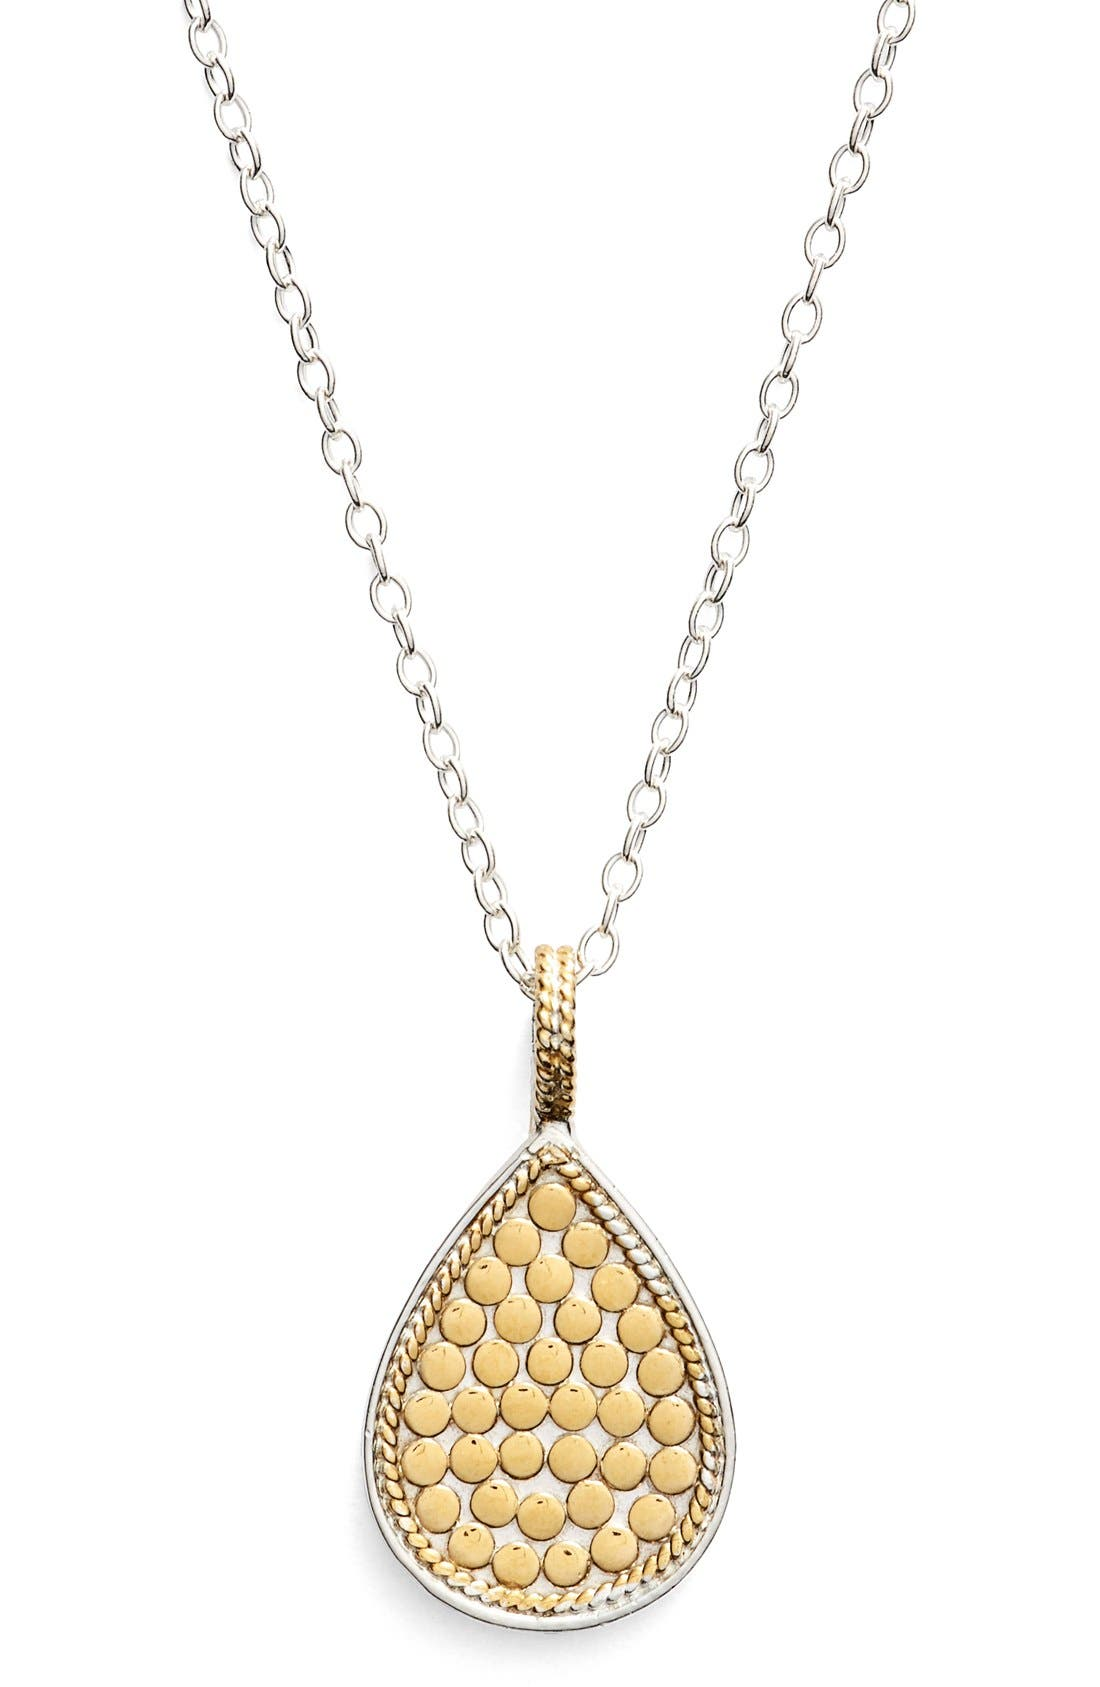 'Gili' Reversible Teardrop Pendant Necklace,                         Main,                         color, GOLD/ SILVER